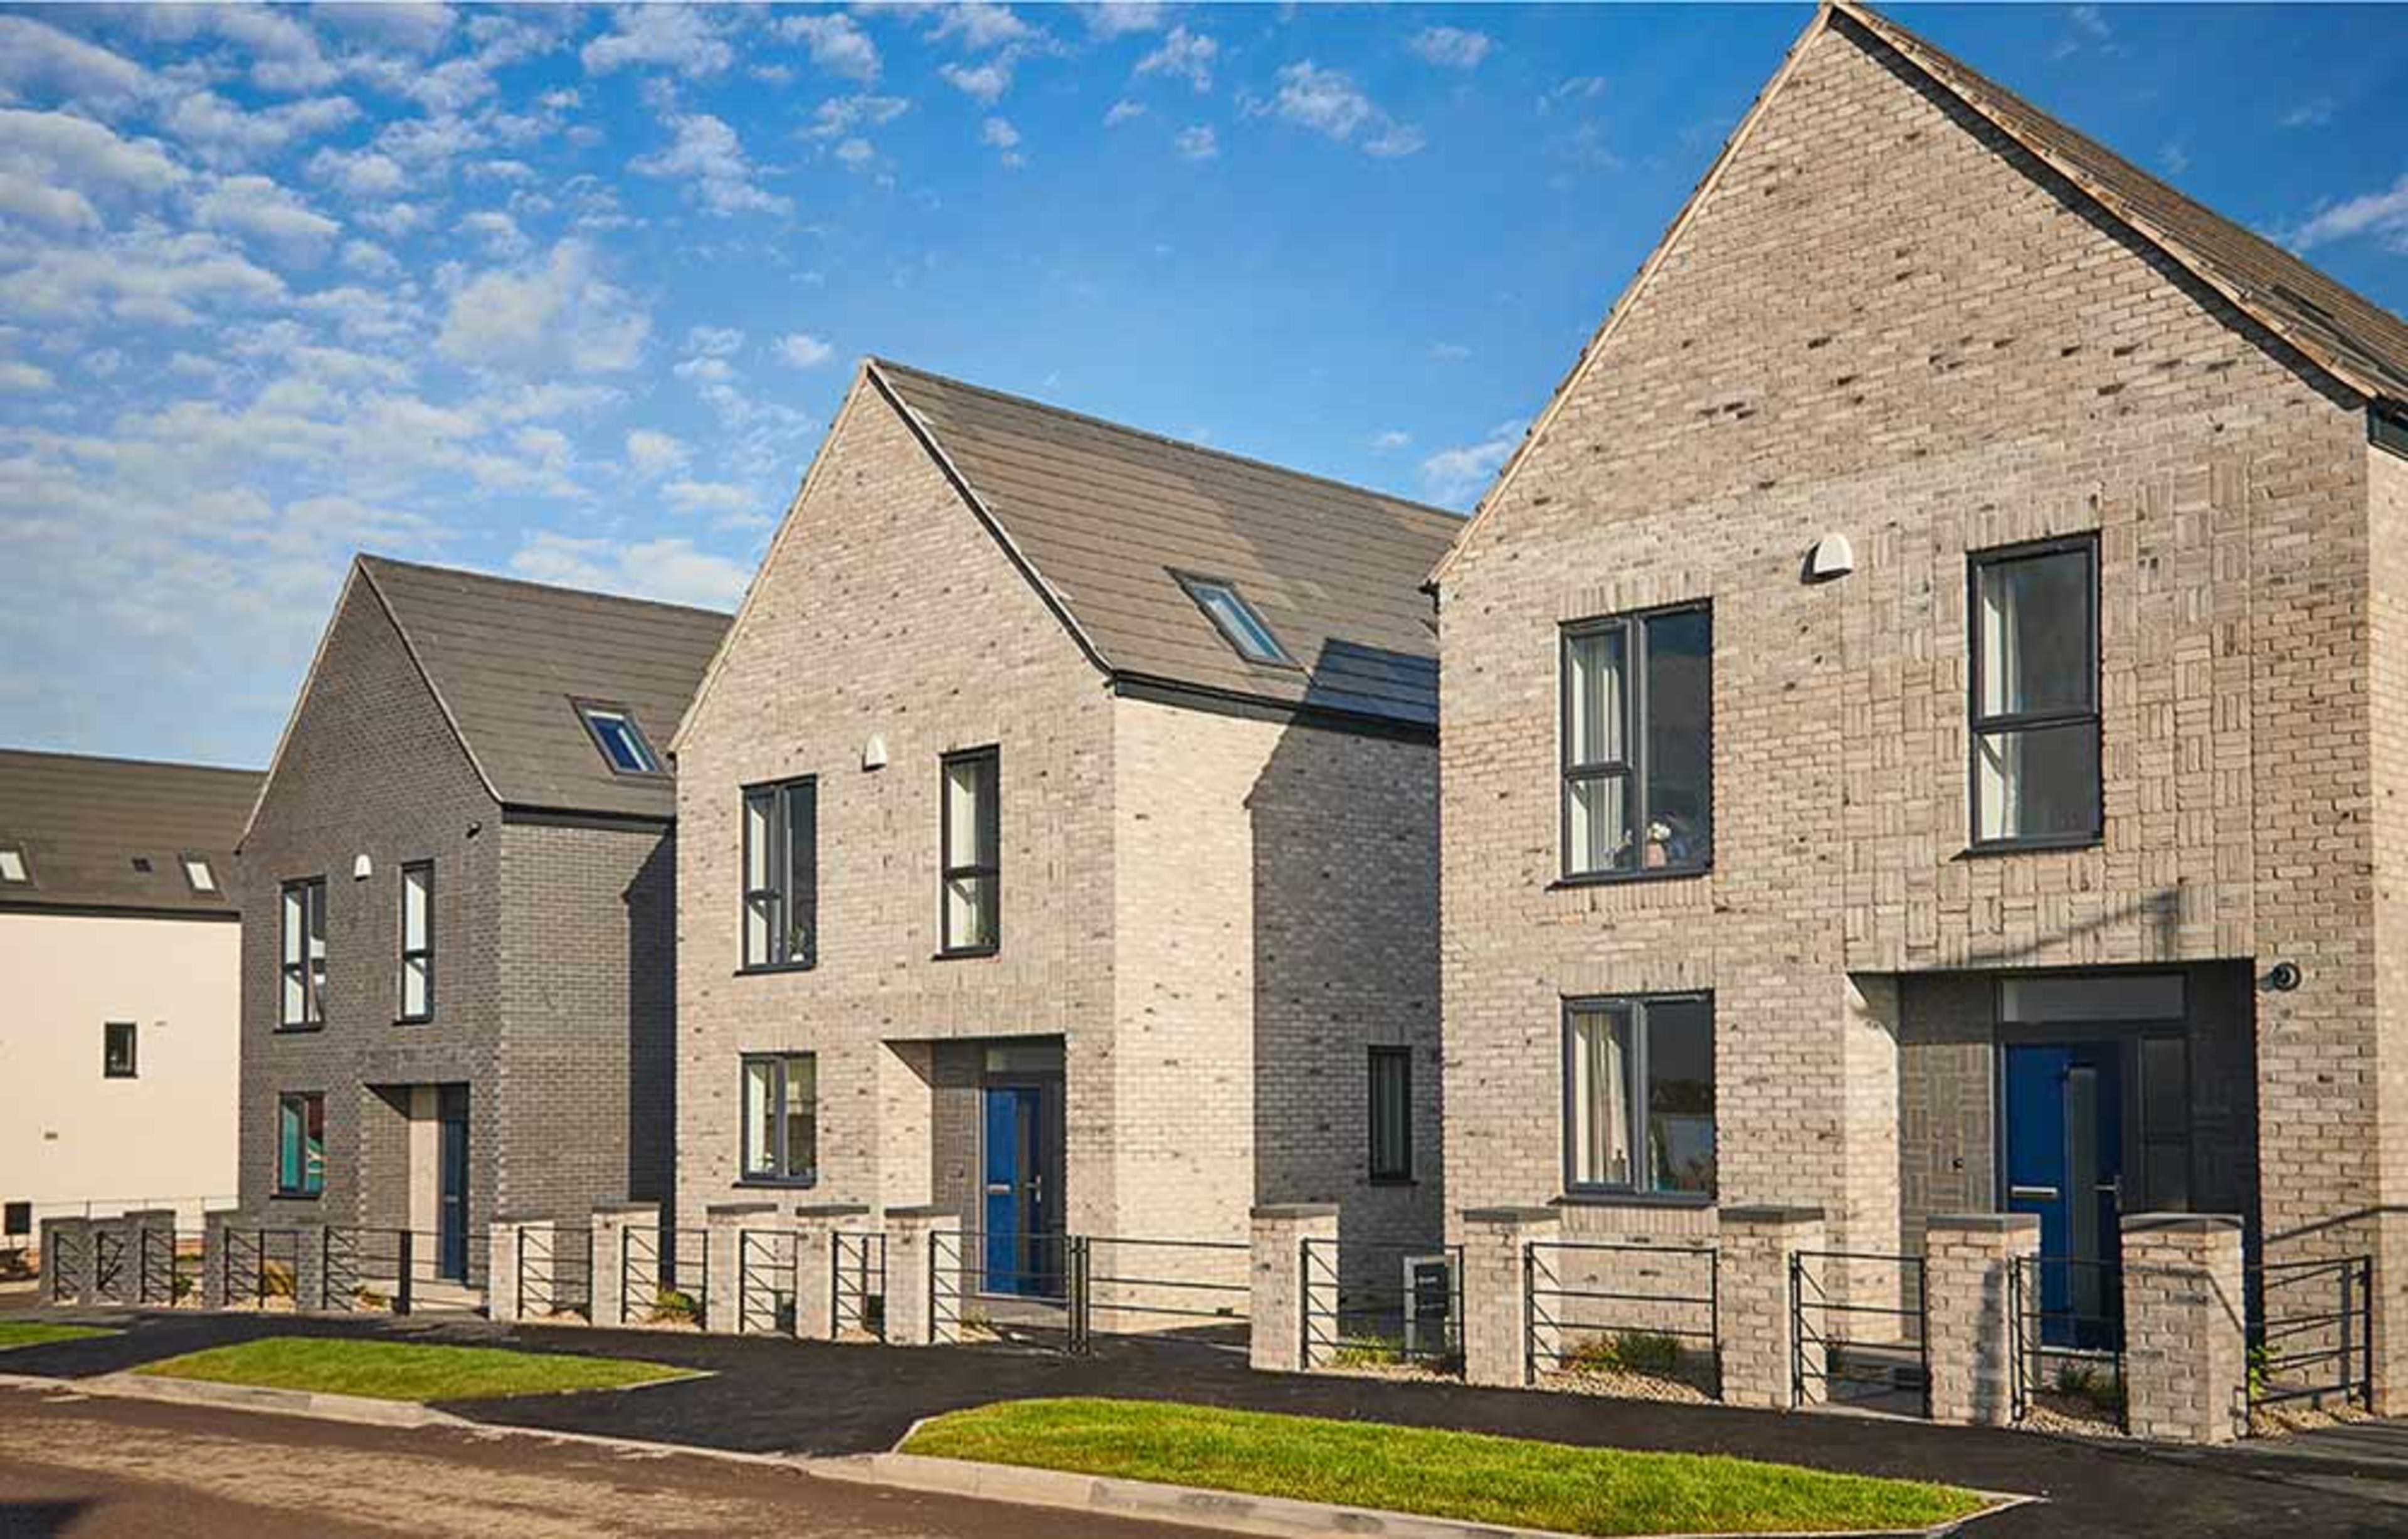 A row of new-build detached houses at Meaux Rise